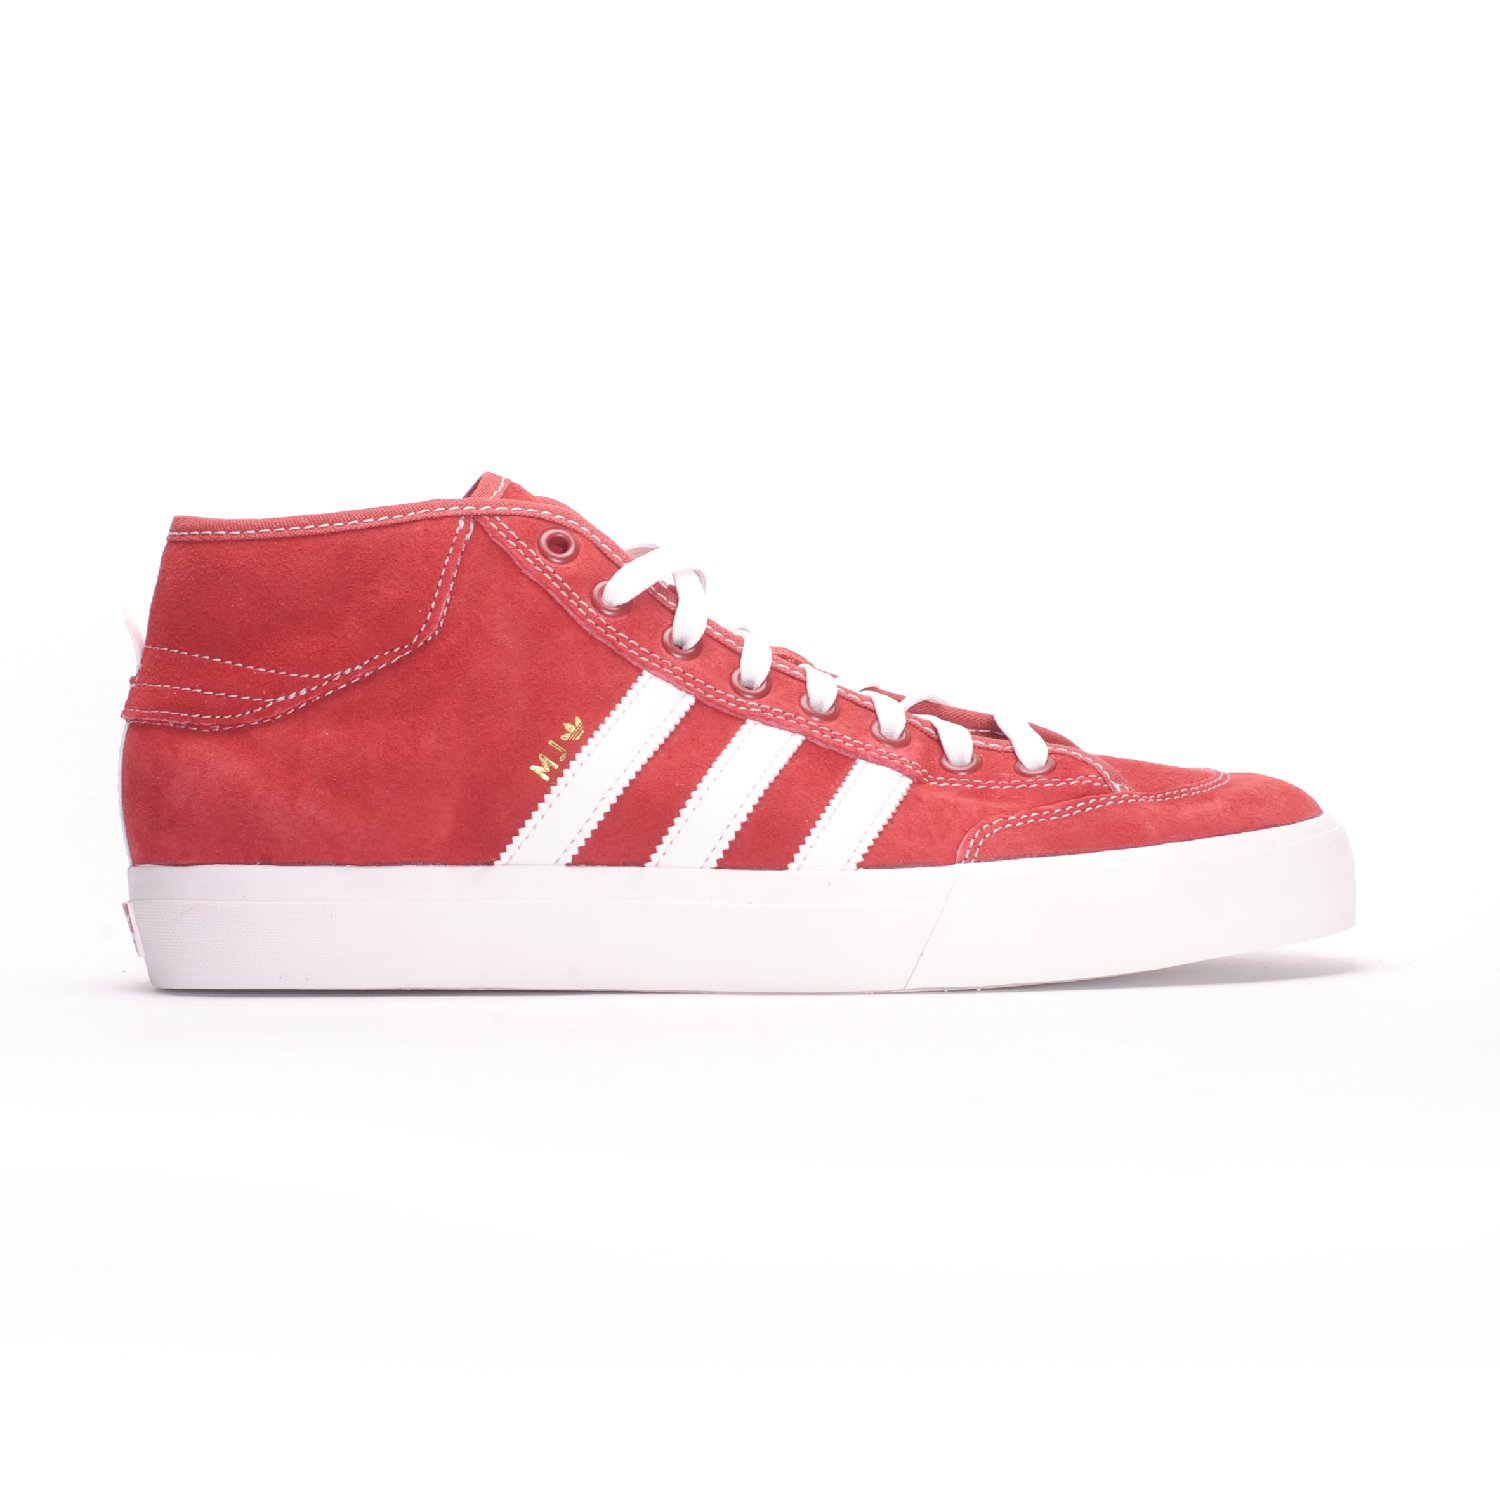 c41e6a392b5ee adidas Matchcourt Mid Shoes Multicolor - Mens Skateboarding